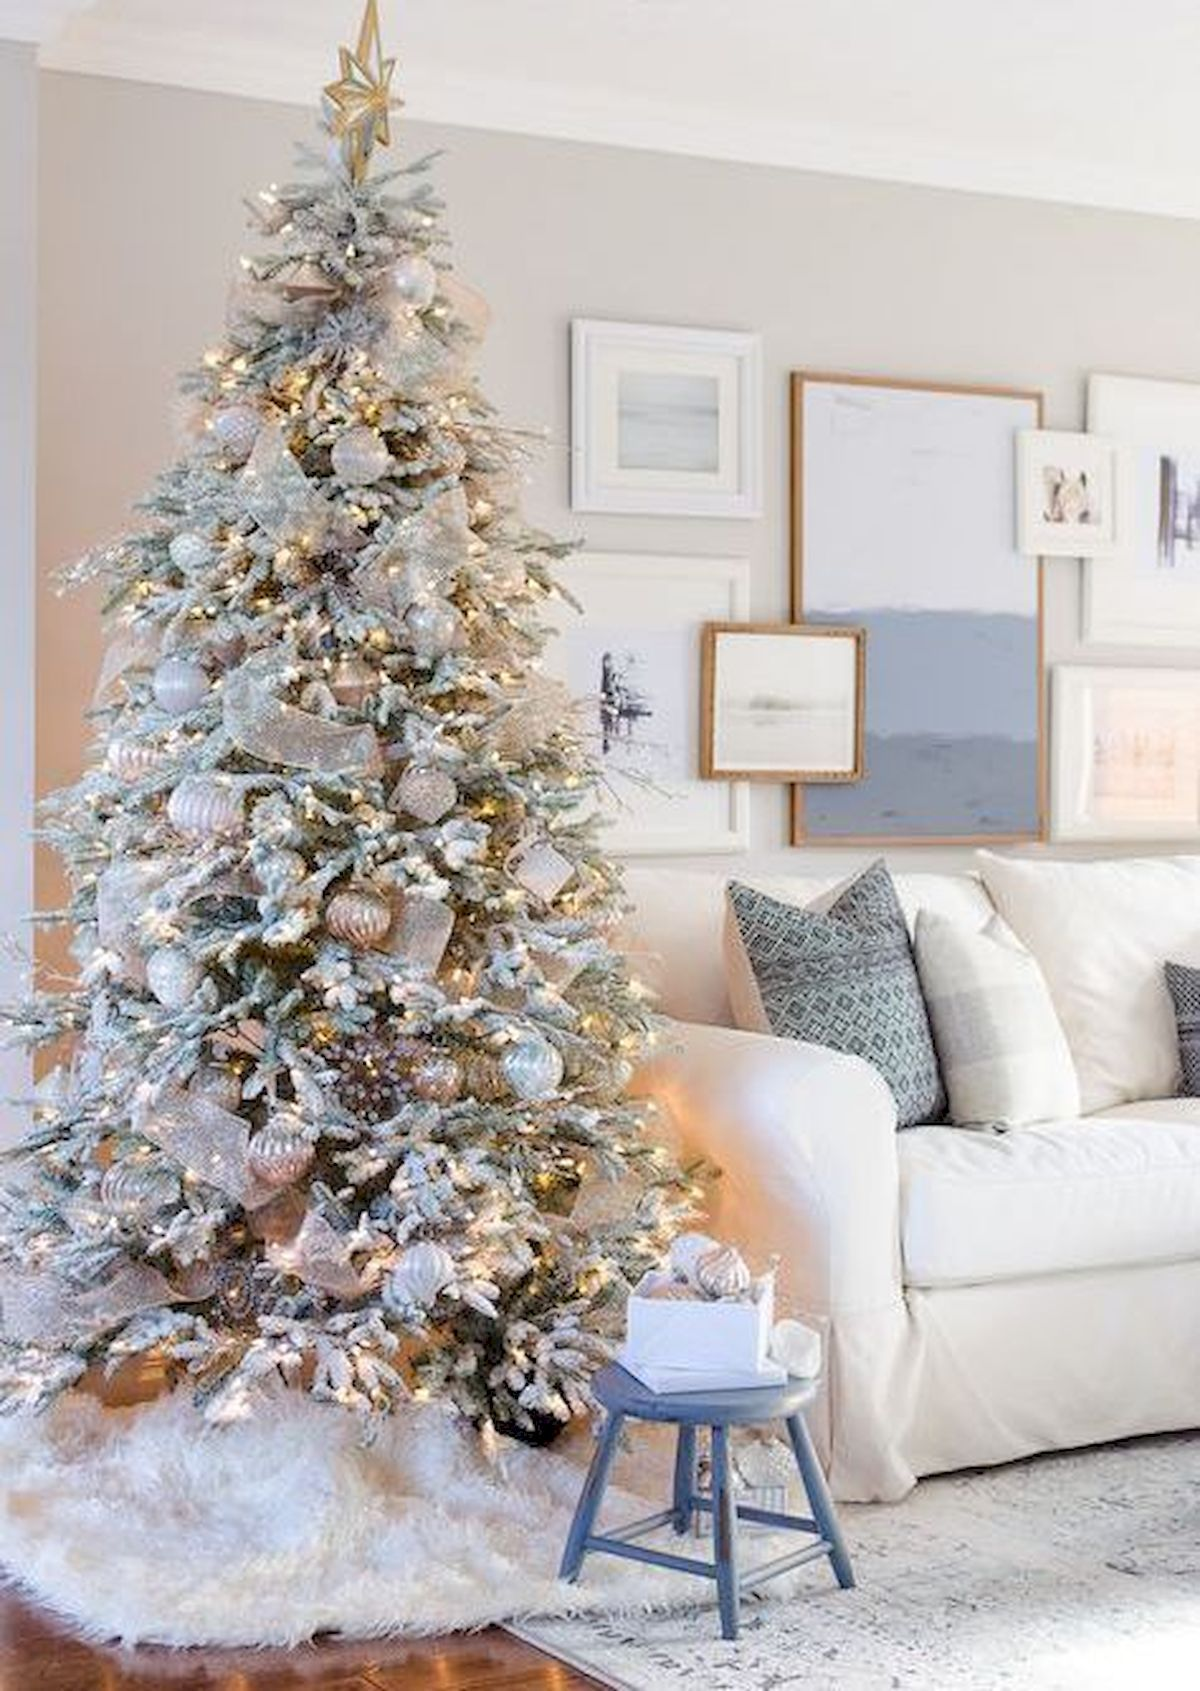 42+ Gold flocked christmas tree ideas in 2021